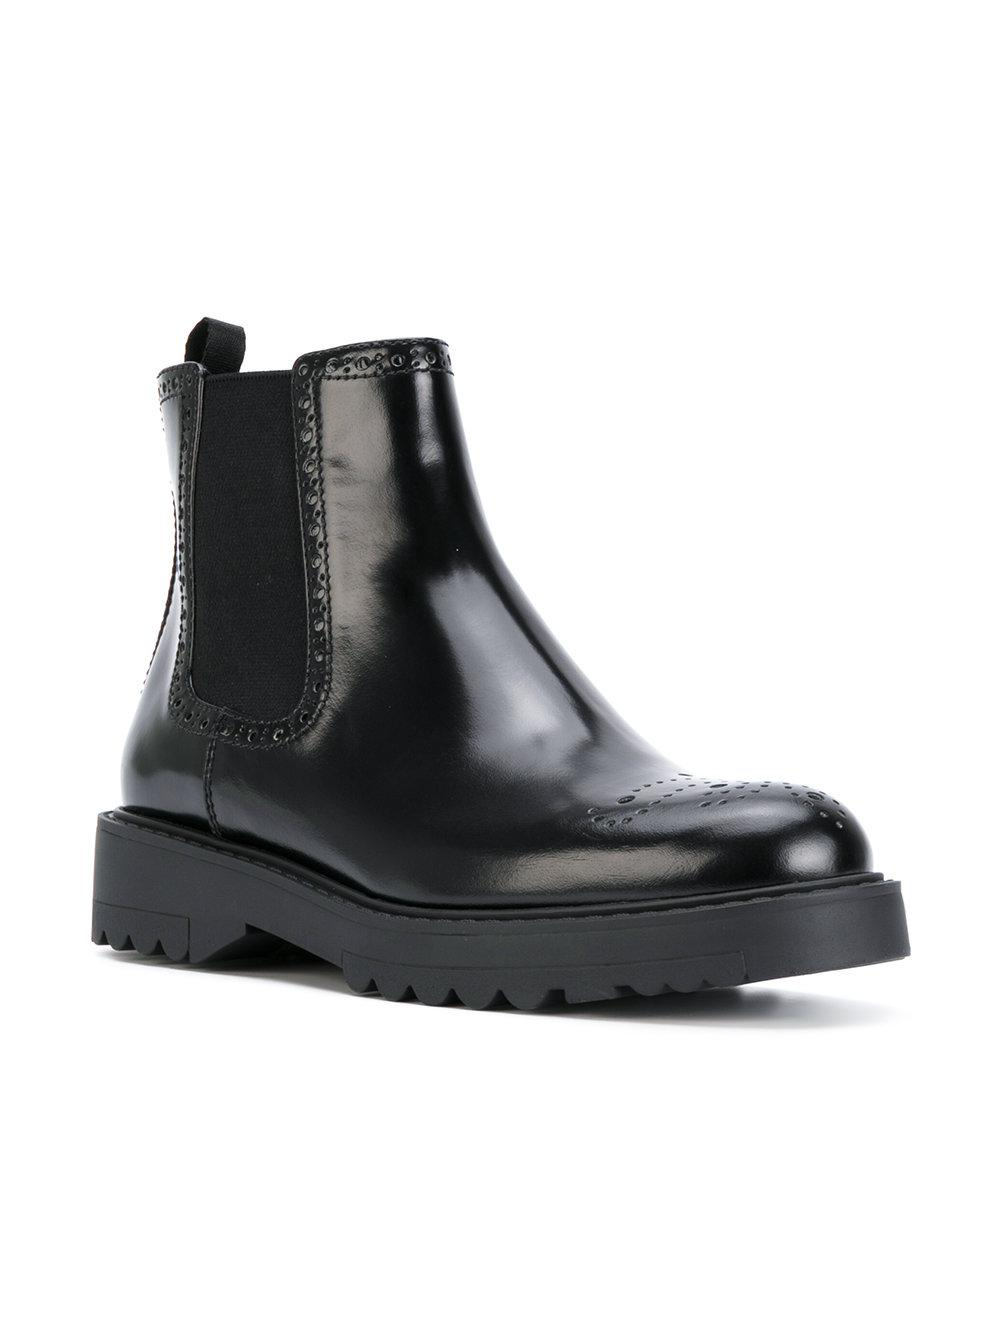 Prada Leather Brogue Ankle Boots in Black